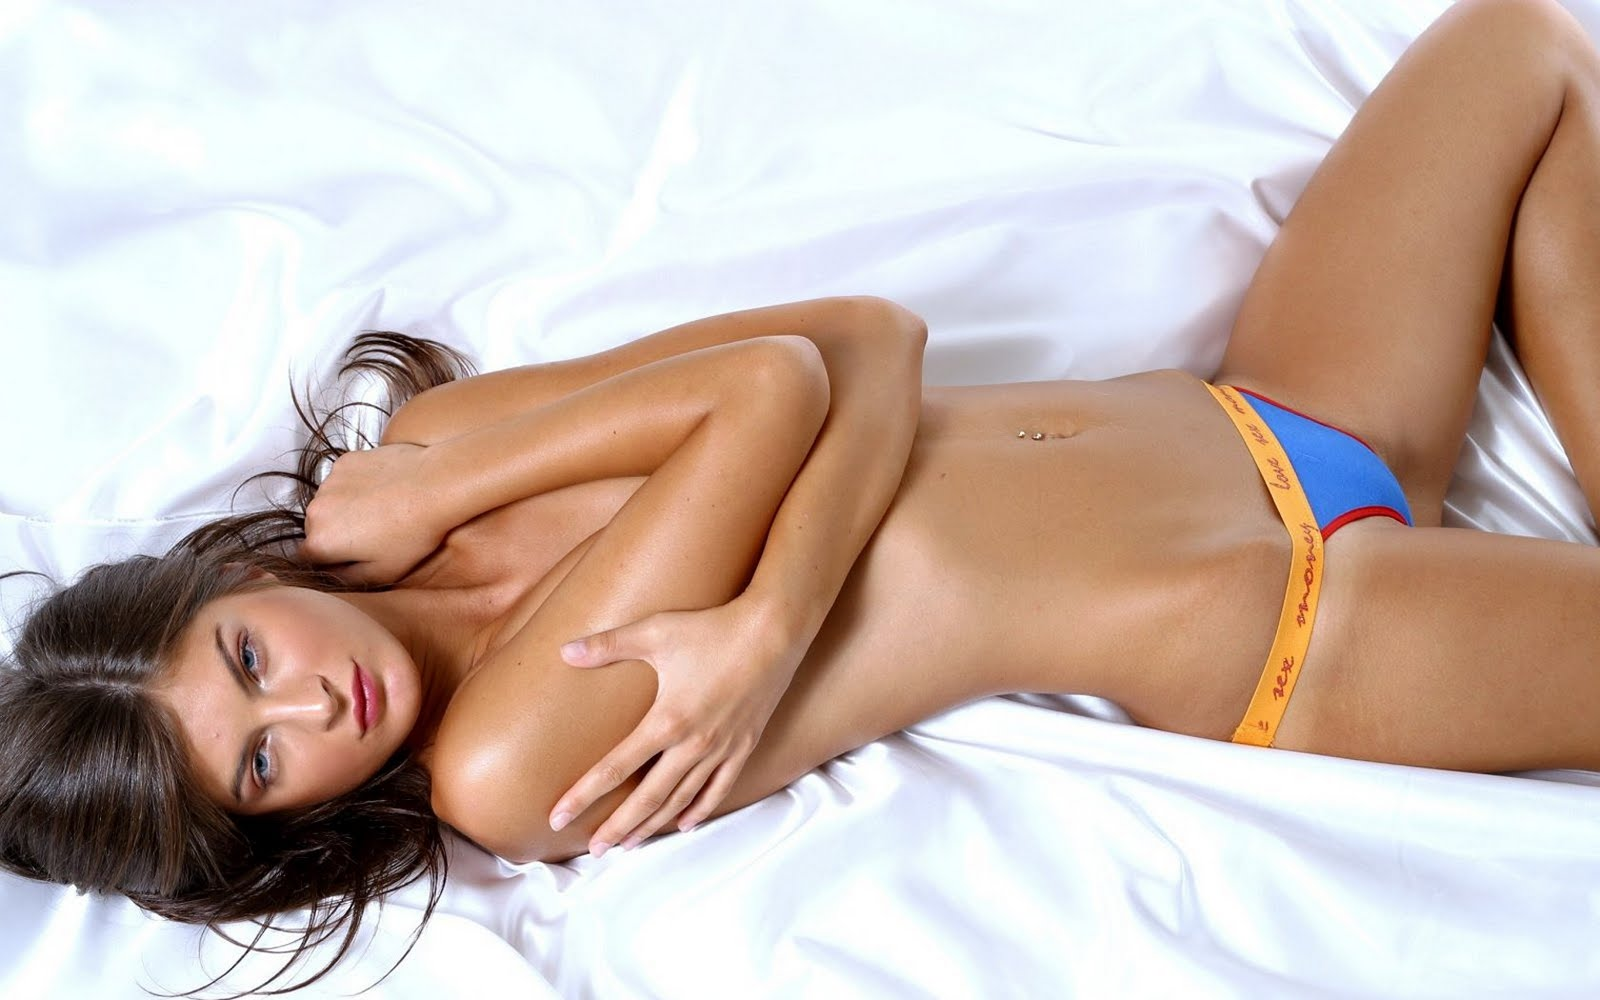 hot girl on bed - photo #10